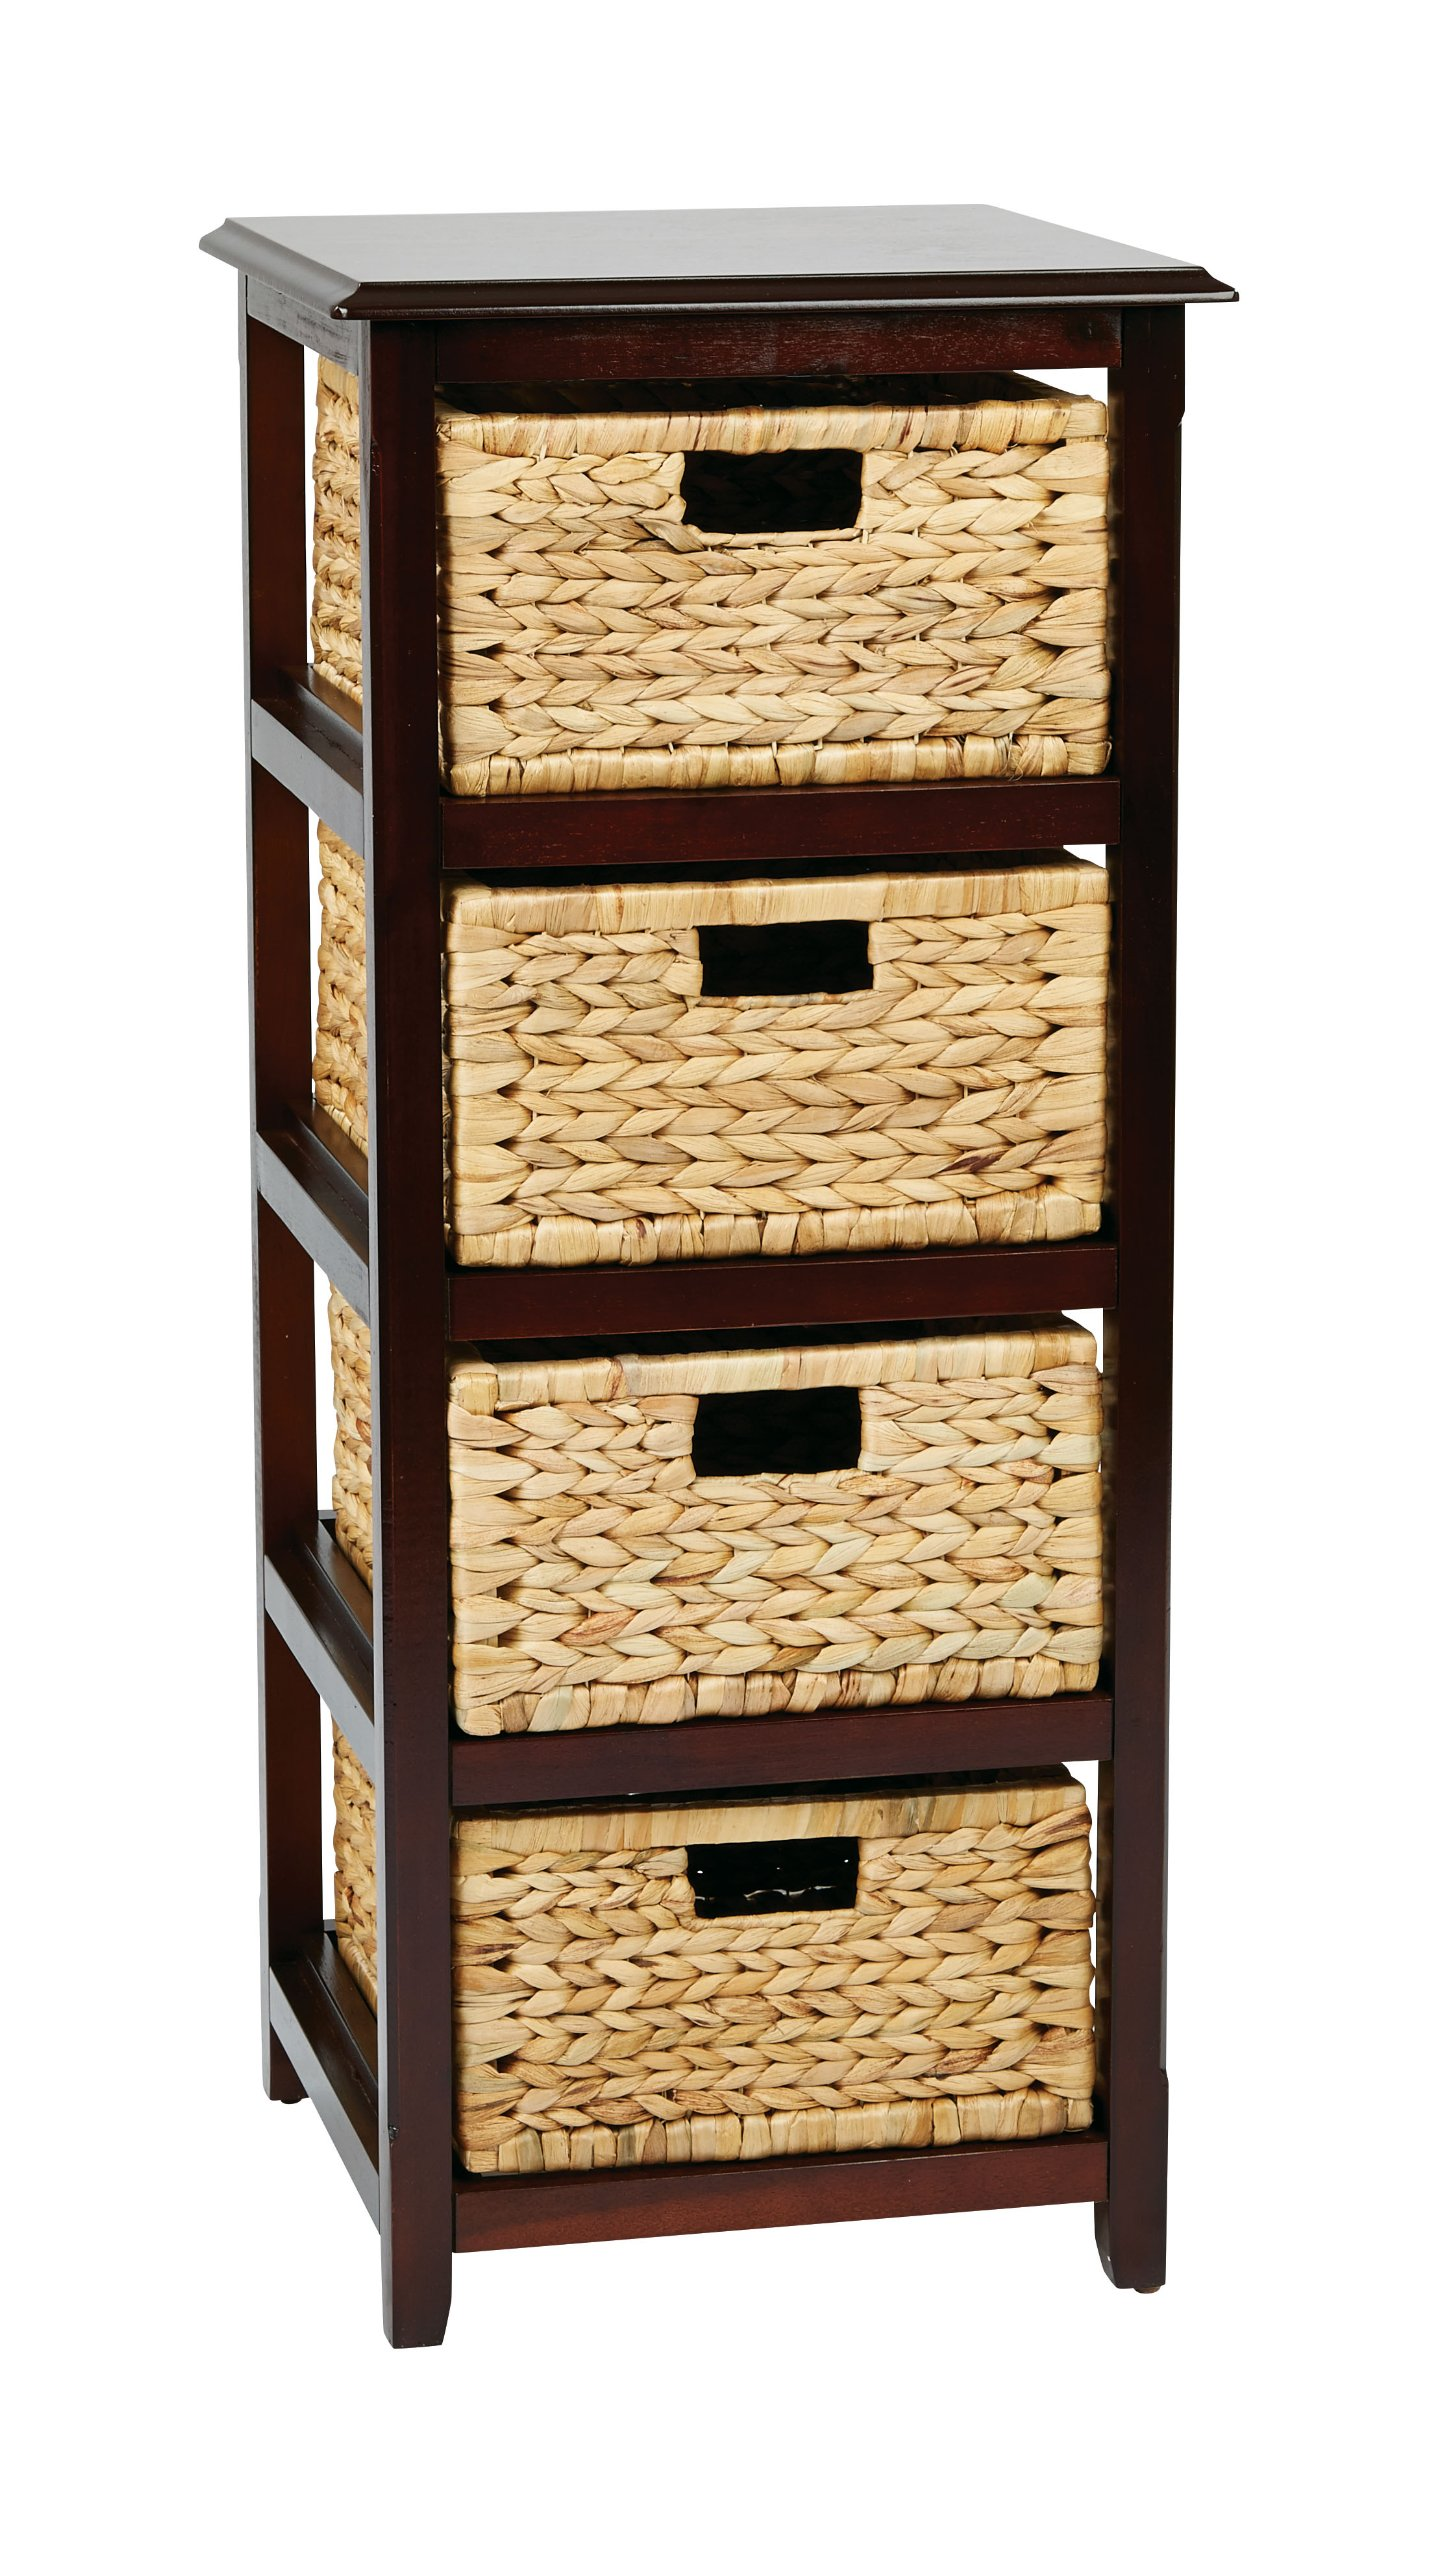 Office Star Seabrook 4-Tier Storage Unit with Natural Baskets, Espresso Finish by OSP Designs